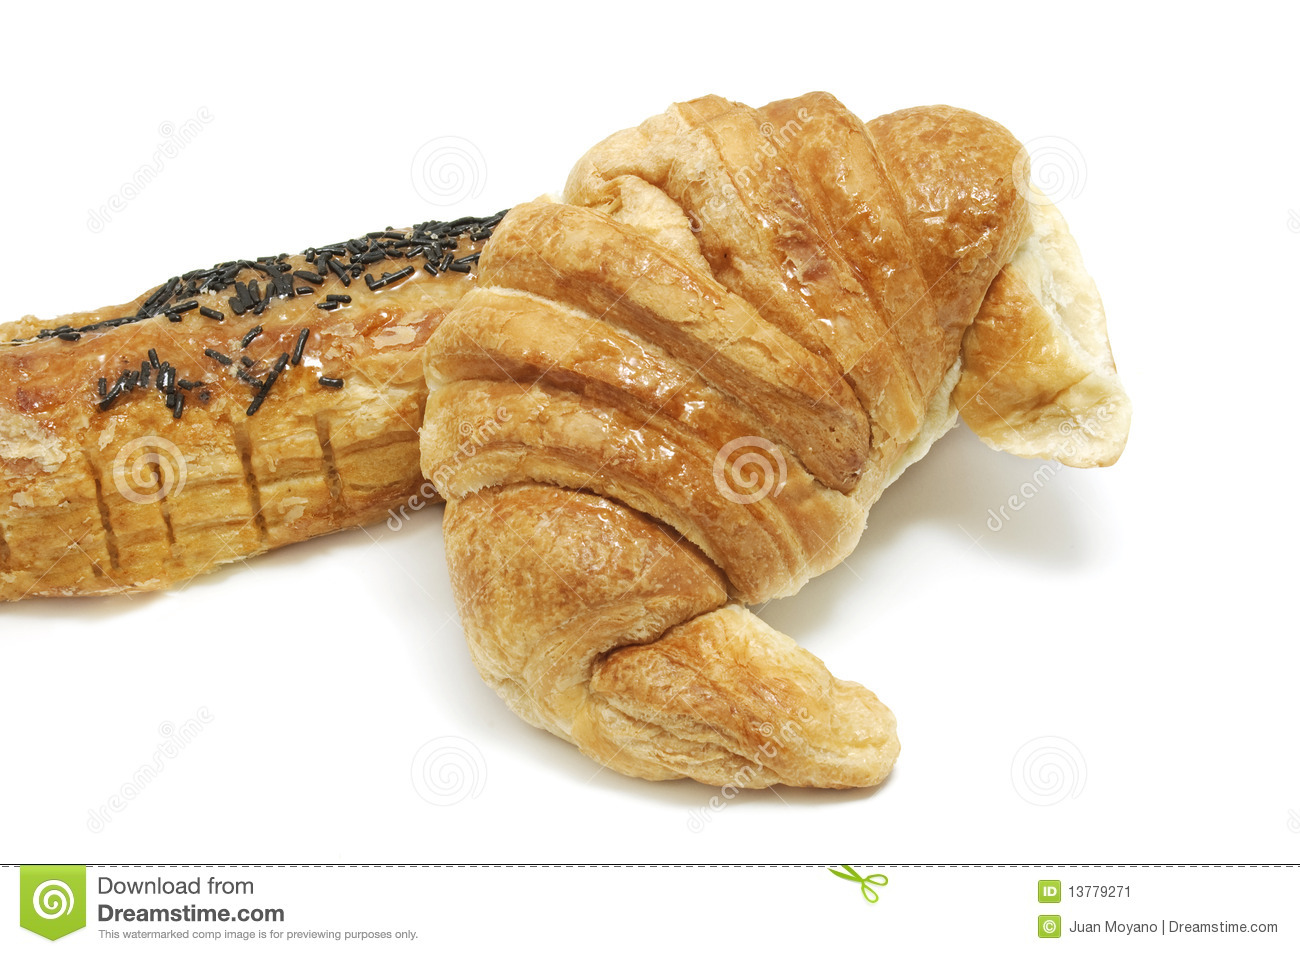 Croissant and pain au chocolat isolated on a white background.